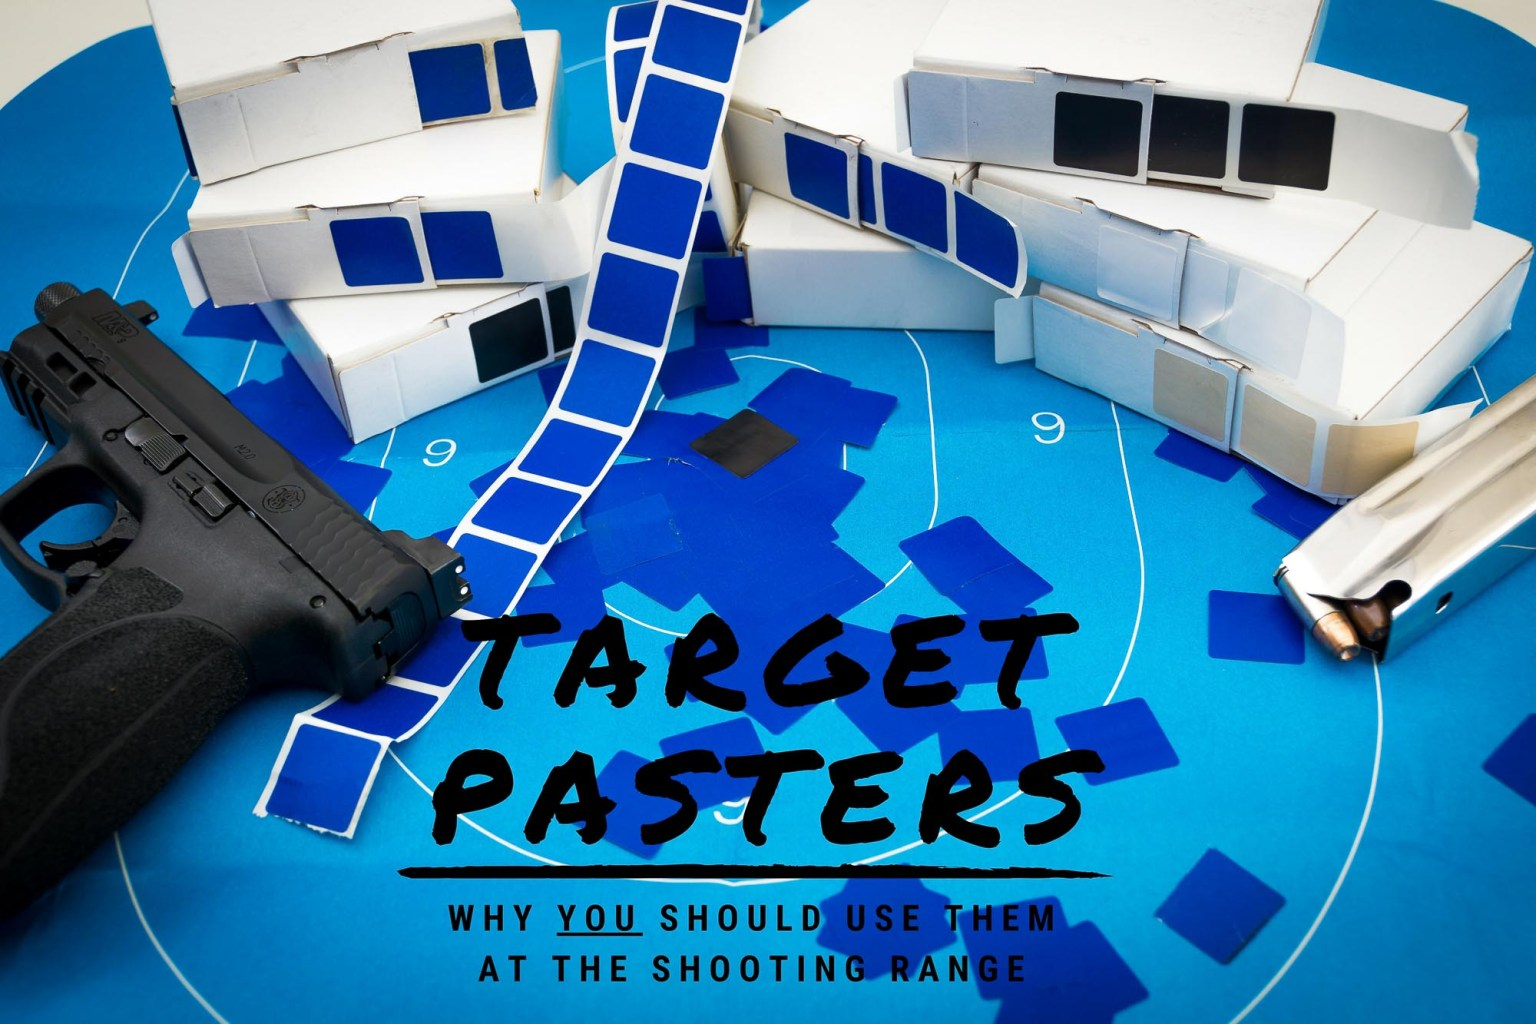 Target Pasters - Why You Should Use Them at the Shooting Range